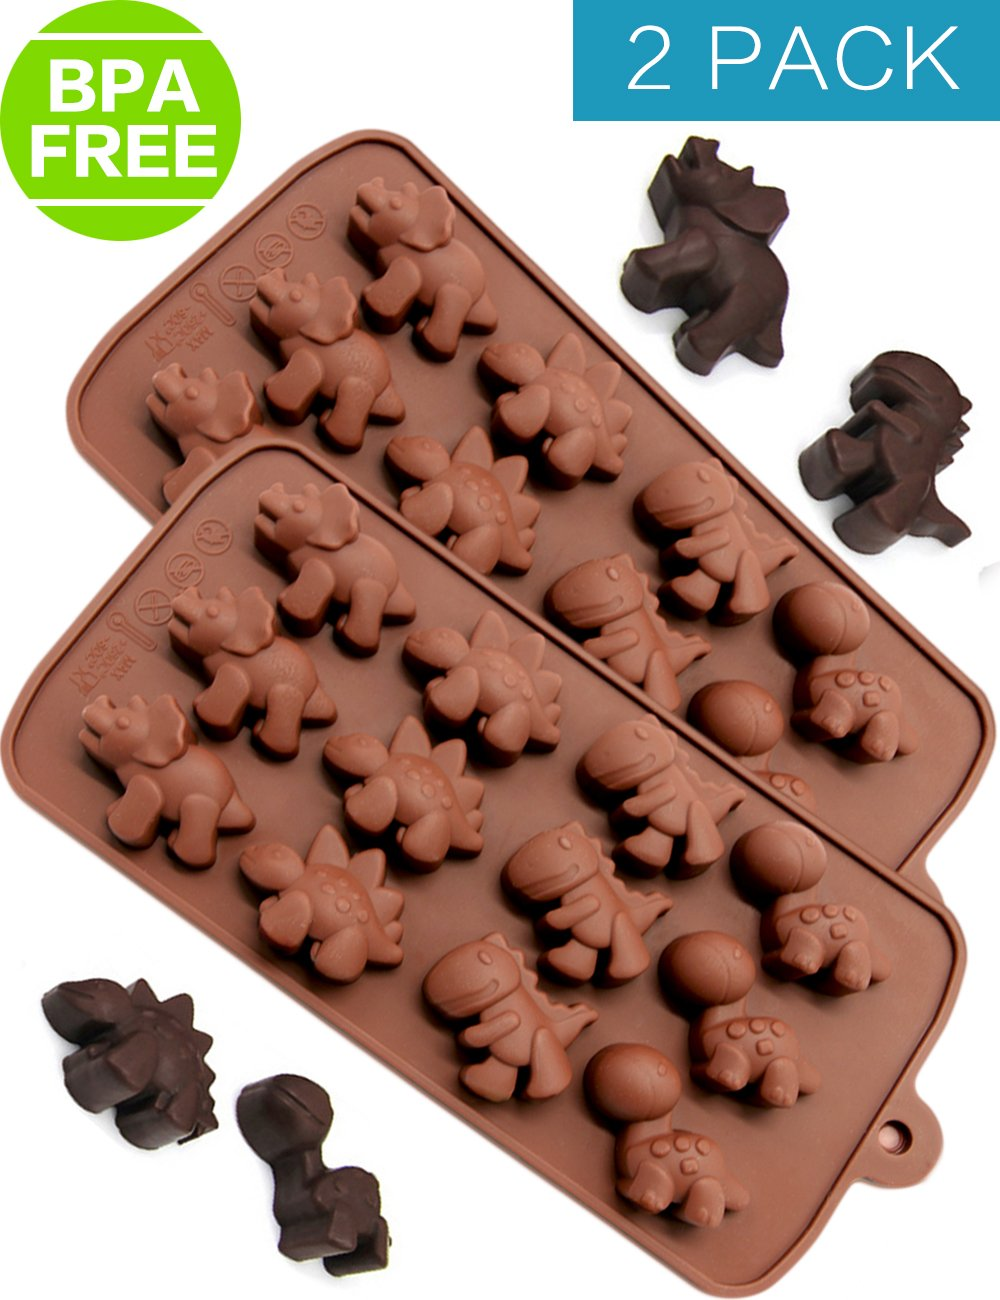 Silicone Chocolate Molds & Baking Candy Molds - 2 Pack Dinosaur Silicone Mini Non Stick Pan